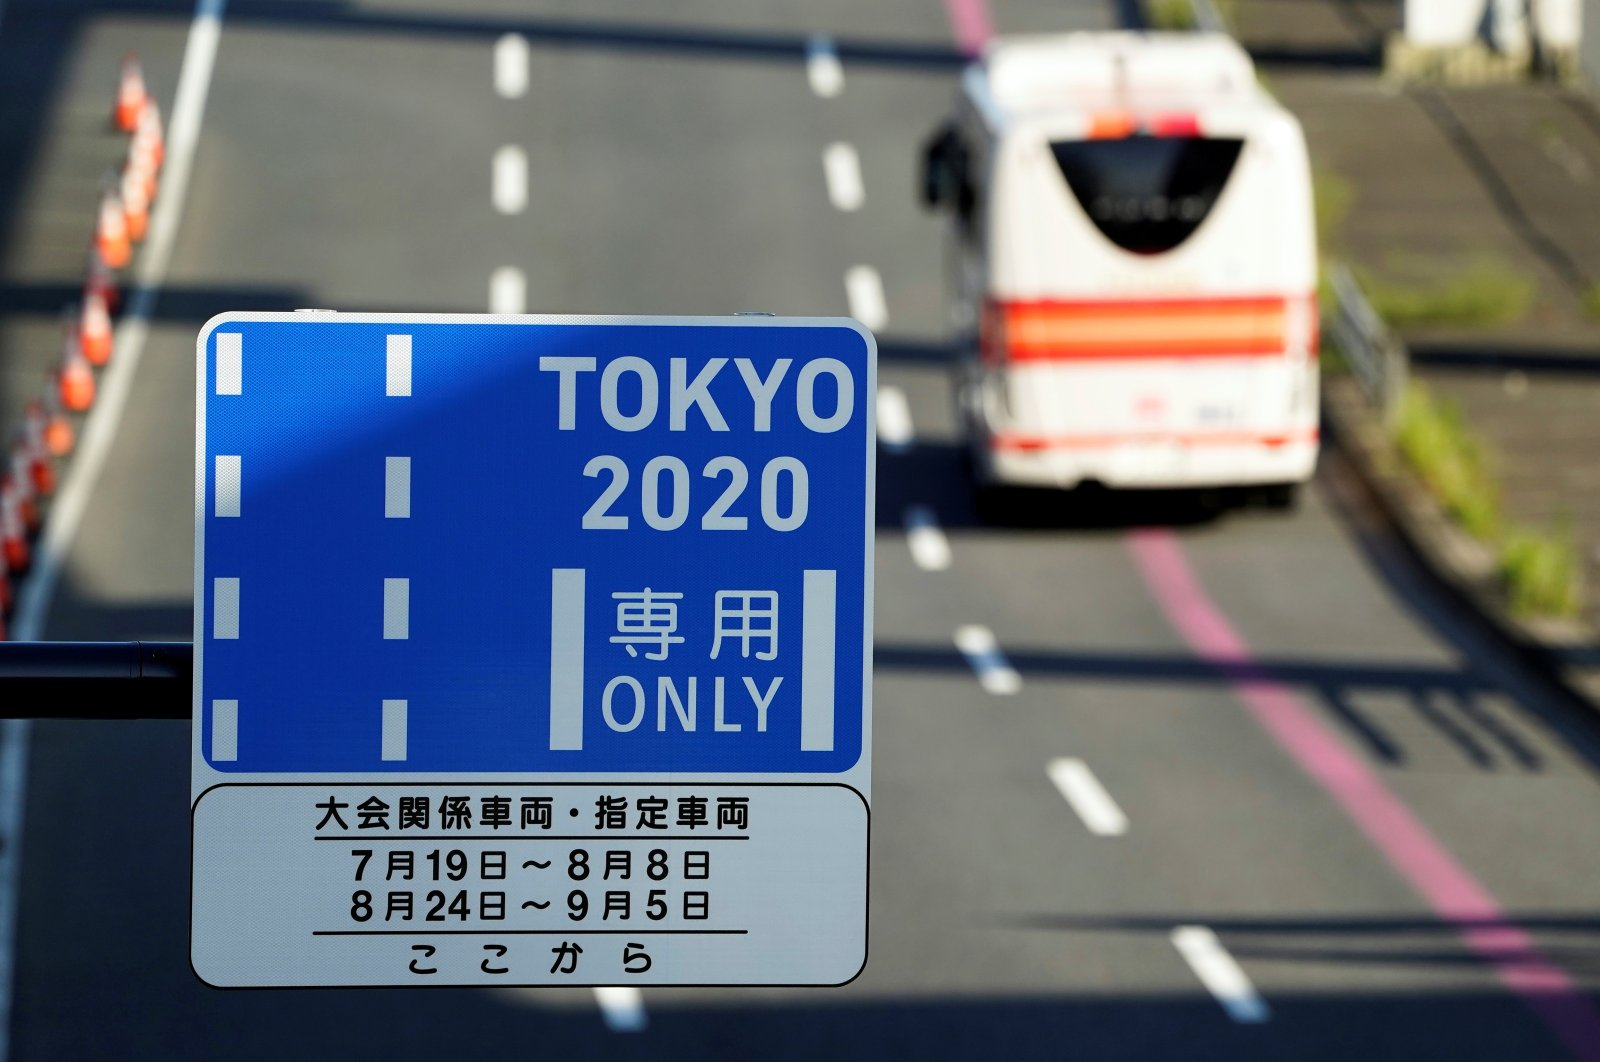 A road sign indicating lane priority for the Tokyo 2020 Olympic Games officials is seen in Tokyo, Japan, July 19, 2021. (Reuters Photo)